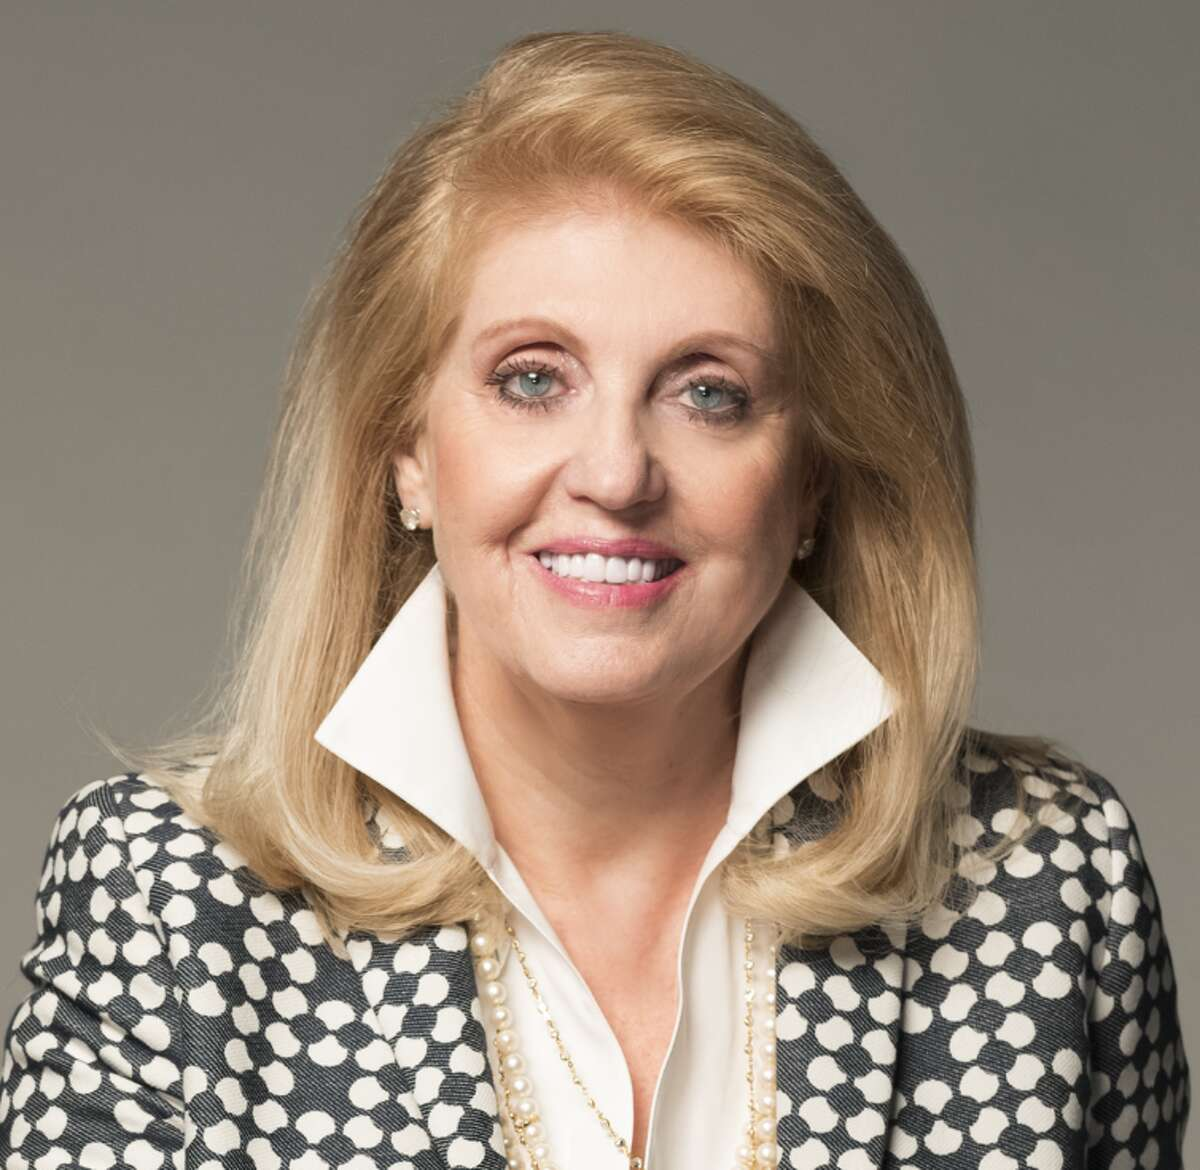 """Lifetime Achievement Award """"Among the winners this year is Deborah Bauer for the Lifetime Achievement Award. After founding Drake Commercial Group in 1989, Deborah has found local and national acclaim for her work in the commercial real estate field, a field typically dominated by men."""""""